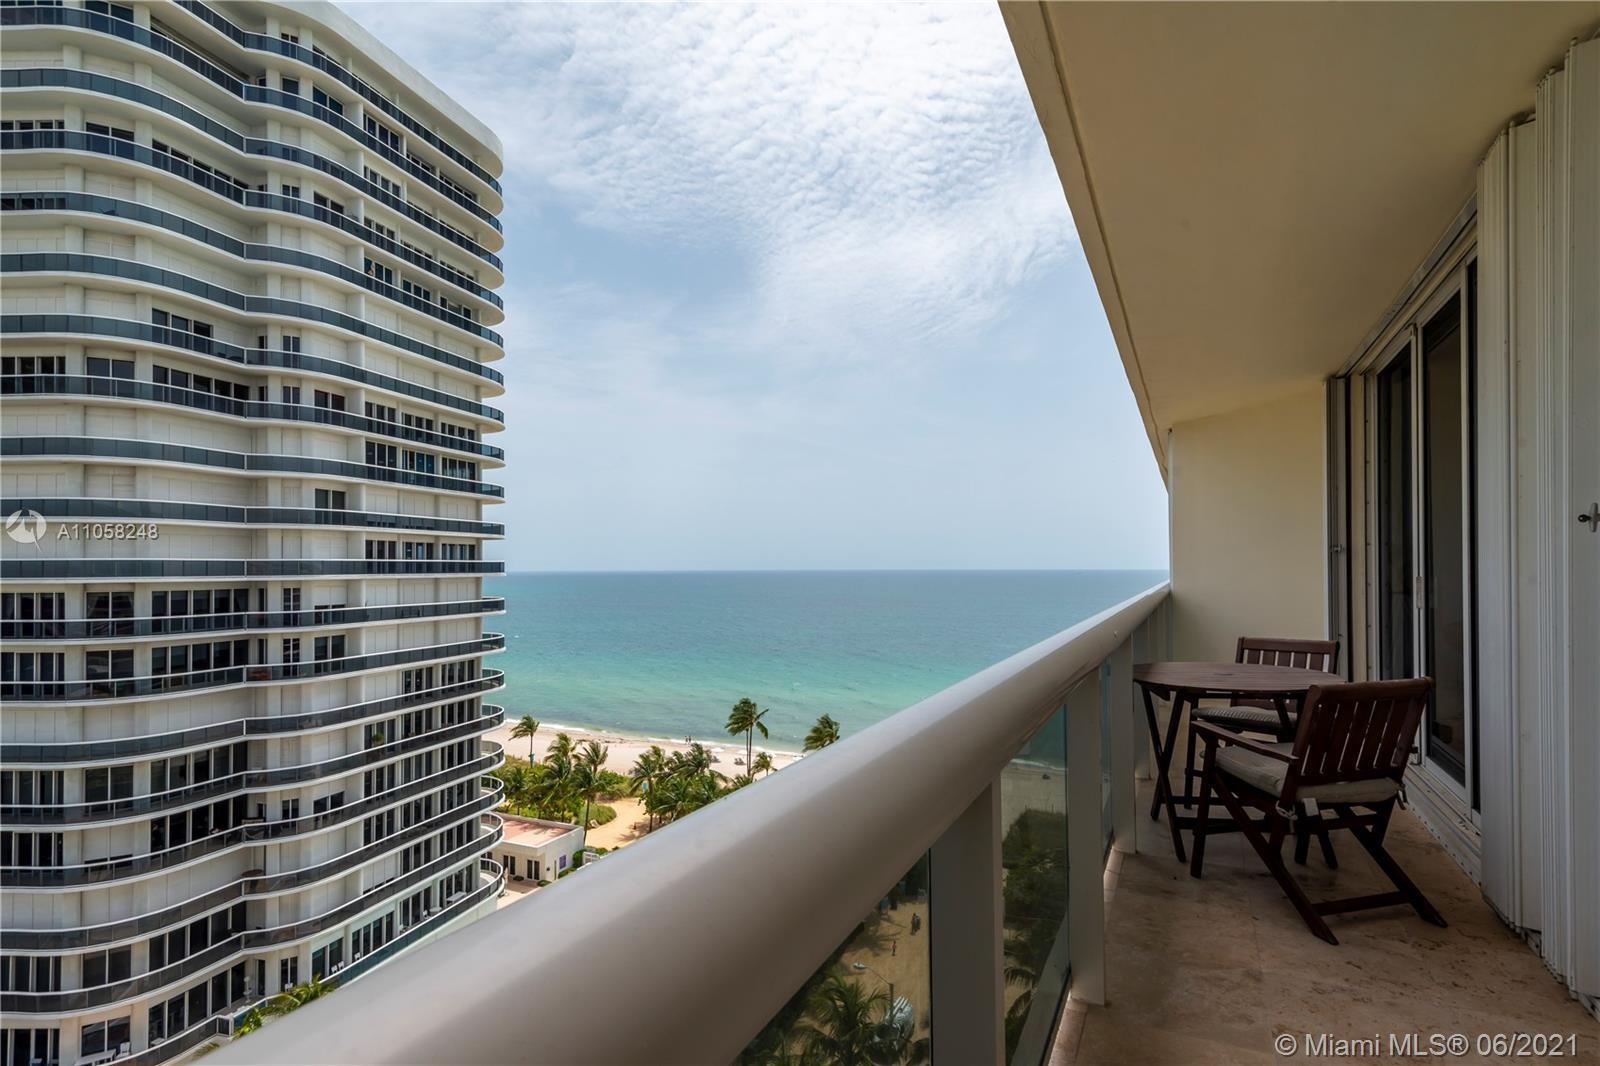 THERE'S NO BETTER LOCATION TO ENJOY THE SEA AND CITY LIFE OF SURFSIDE AND BAL HARBOUR. A FULLY FURNI